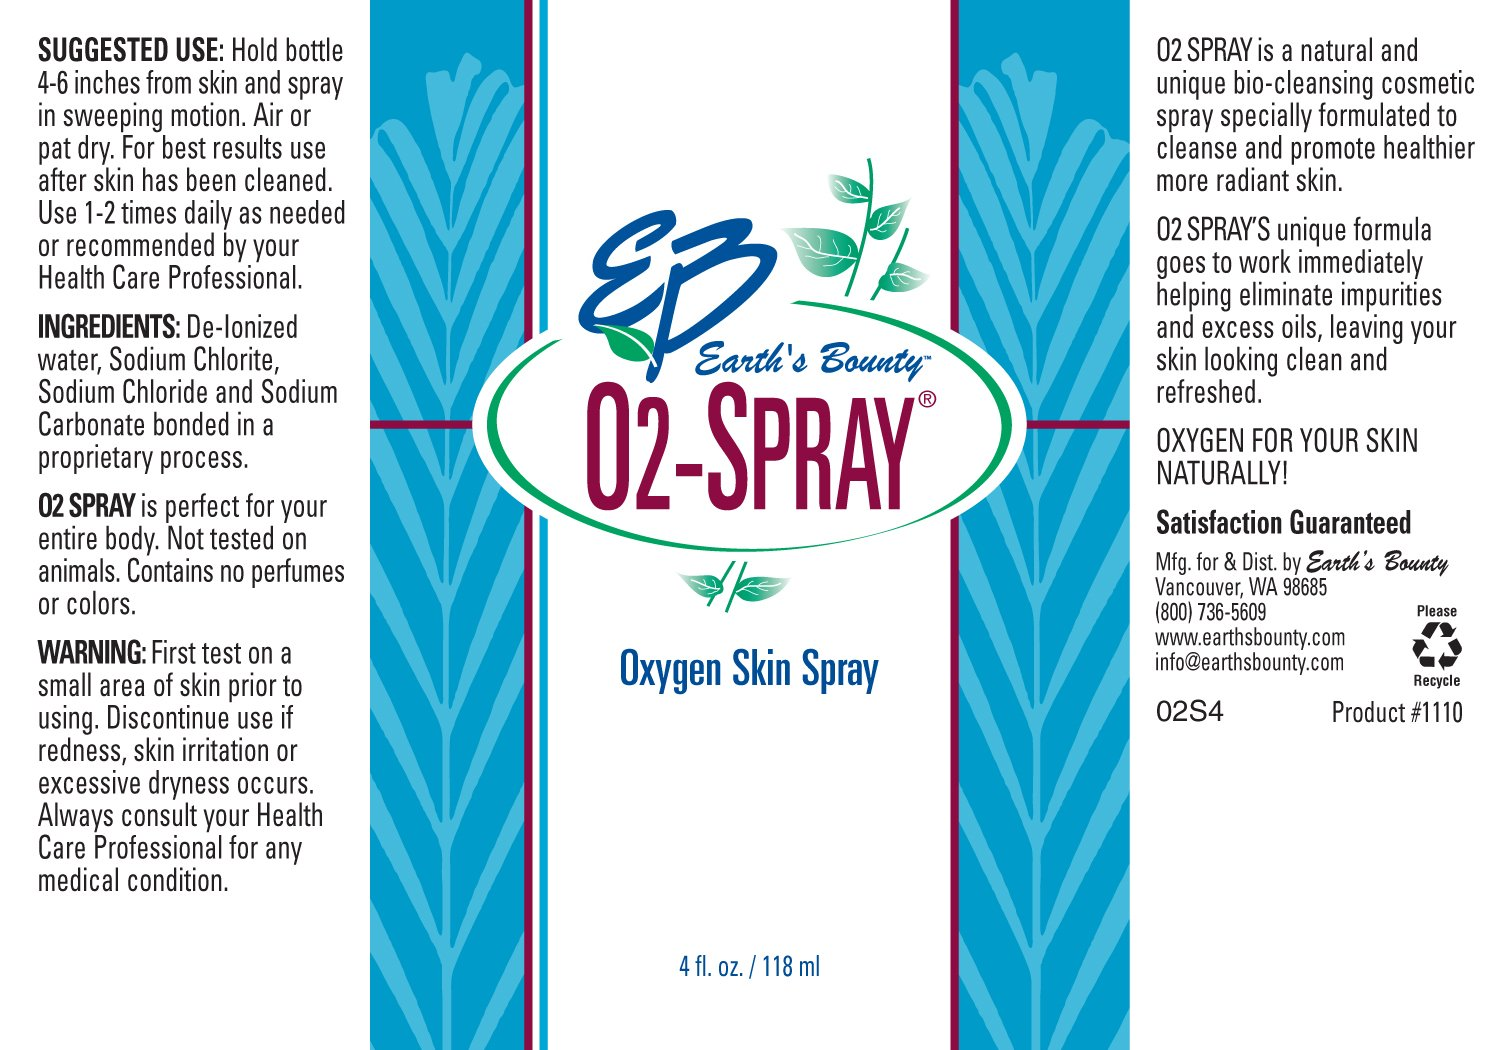 Earth's Bounty O2 Spray 4 fl oz. by Earth's Bounty